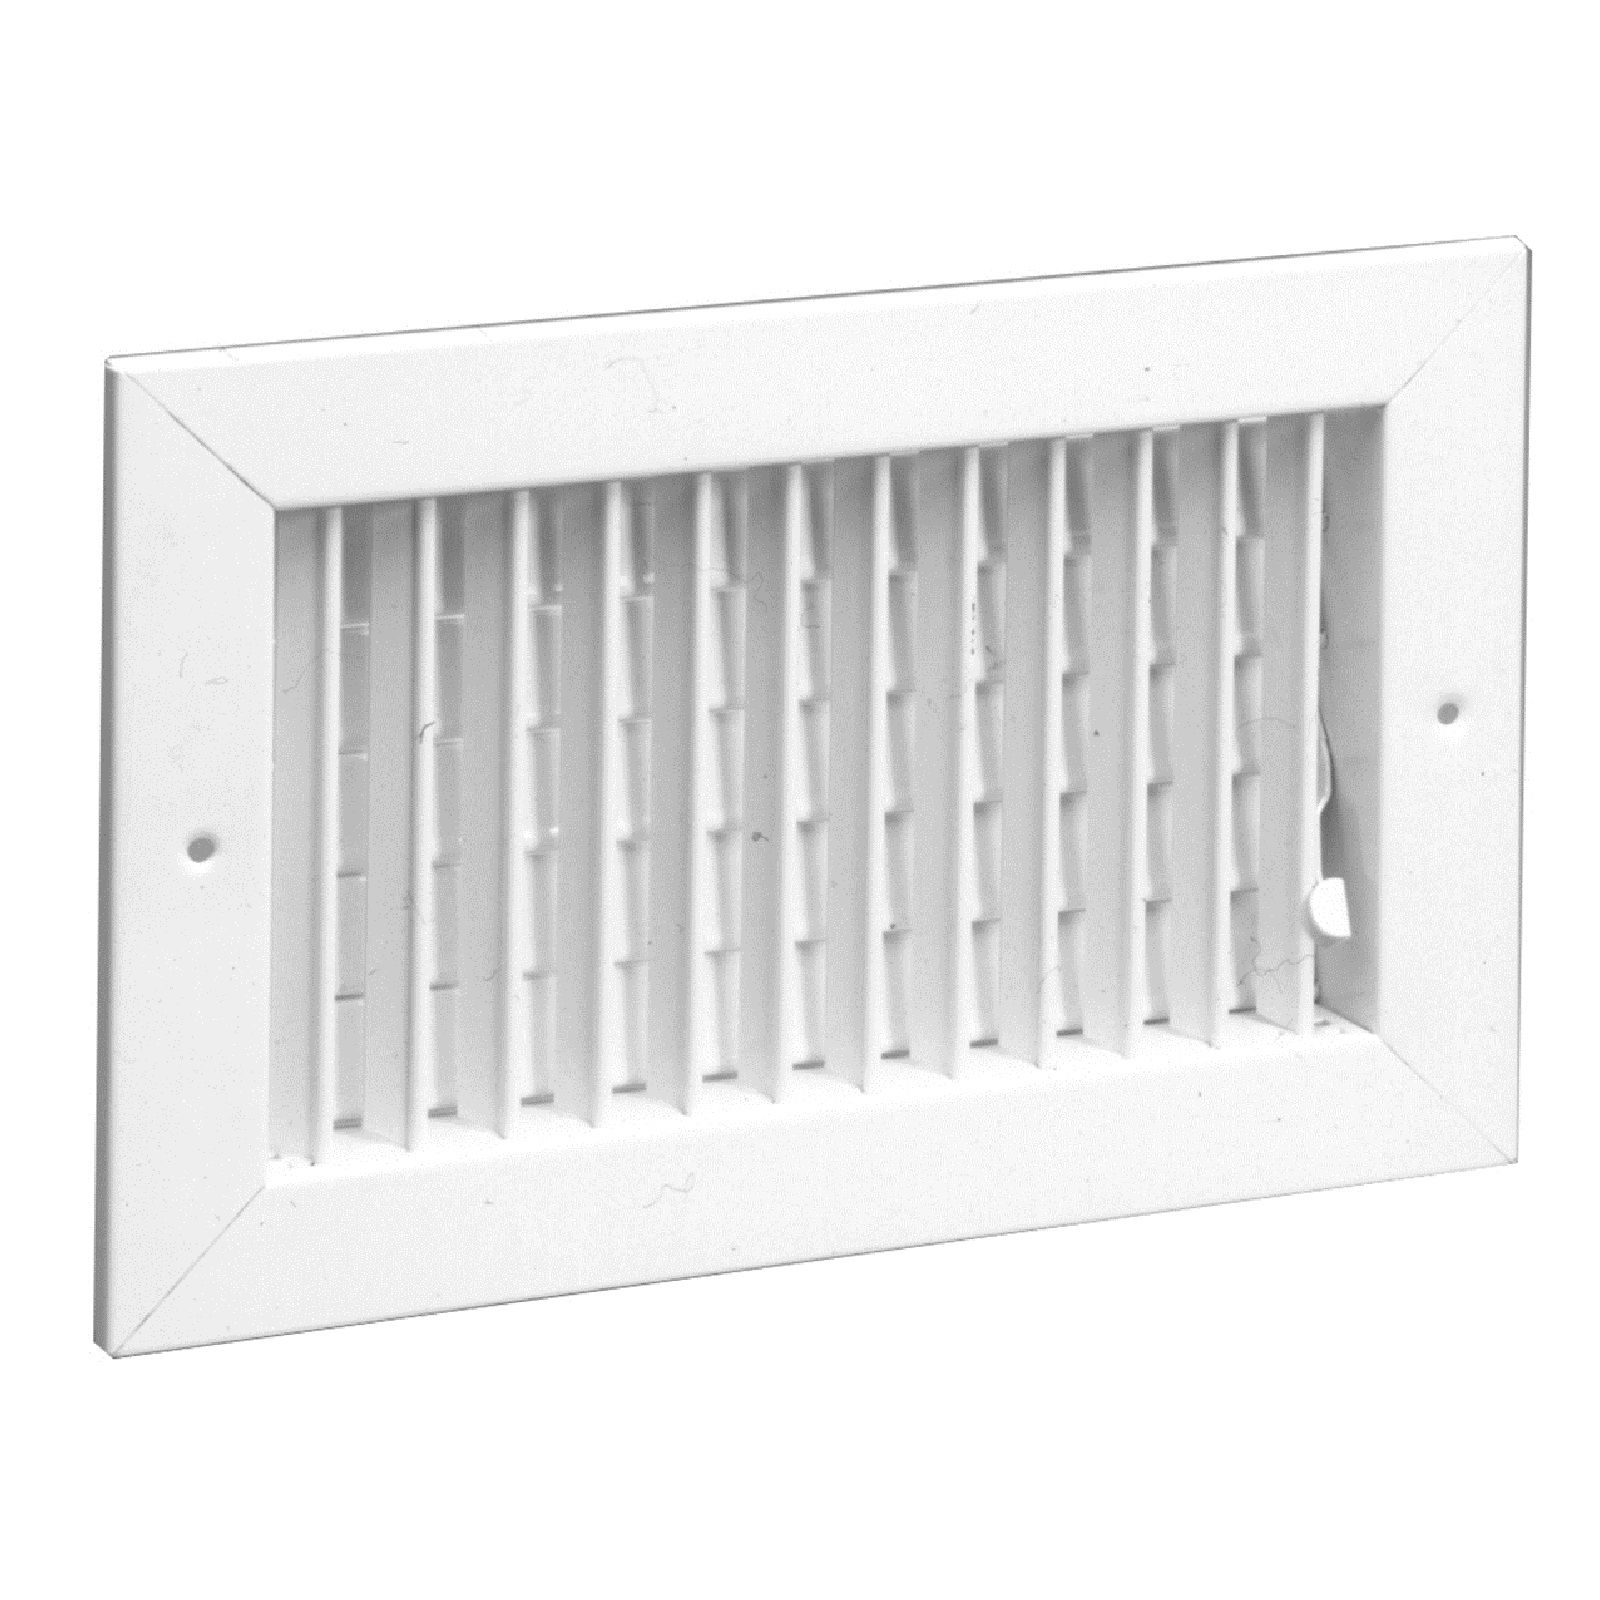 "Hart & Cooley 075001 - Steel Supply Register, Multi-Shutter Damper, White Finish, 6"" X 6"""